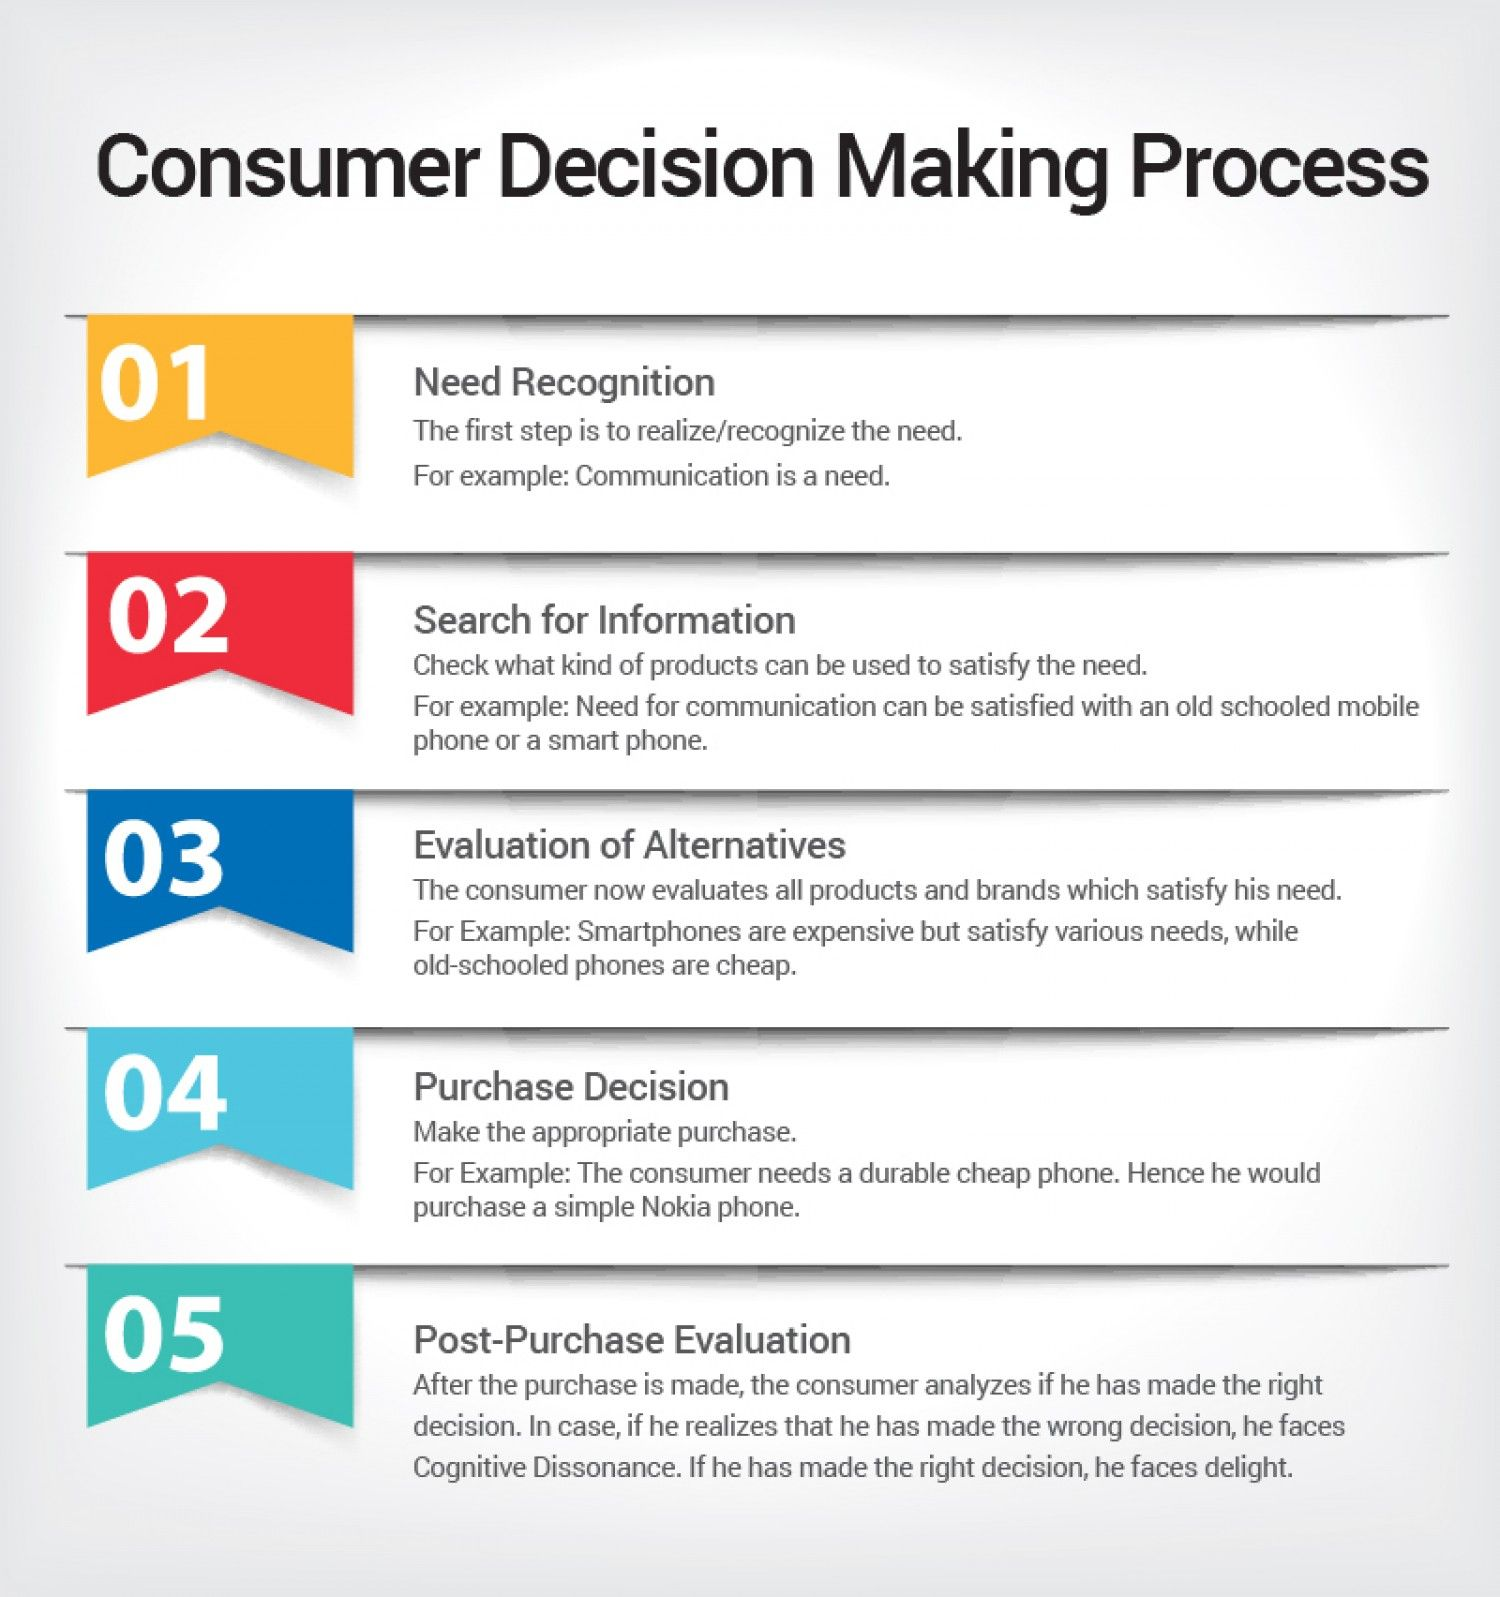 Consumer Decision Making Process Infographic | DESIGN ...